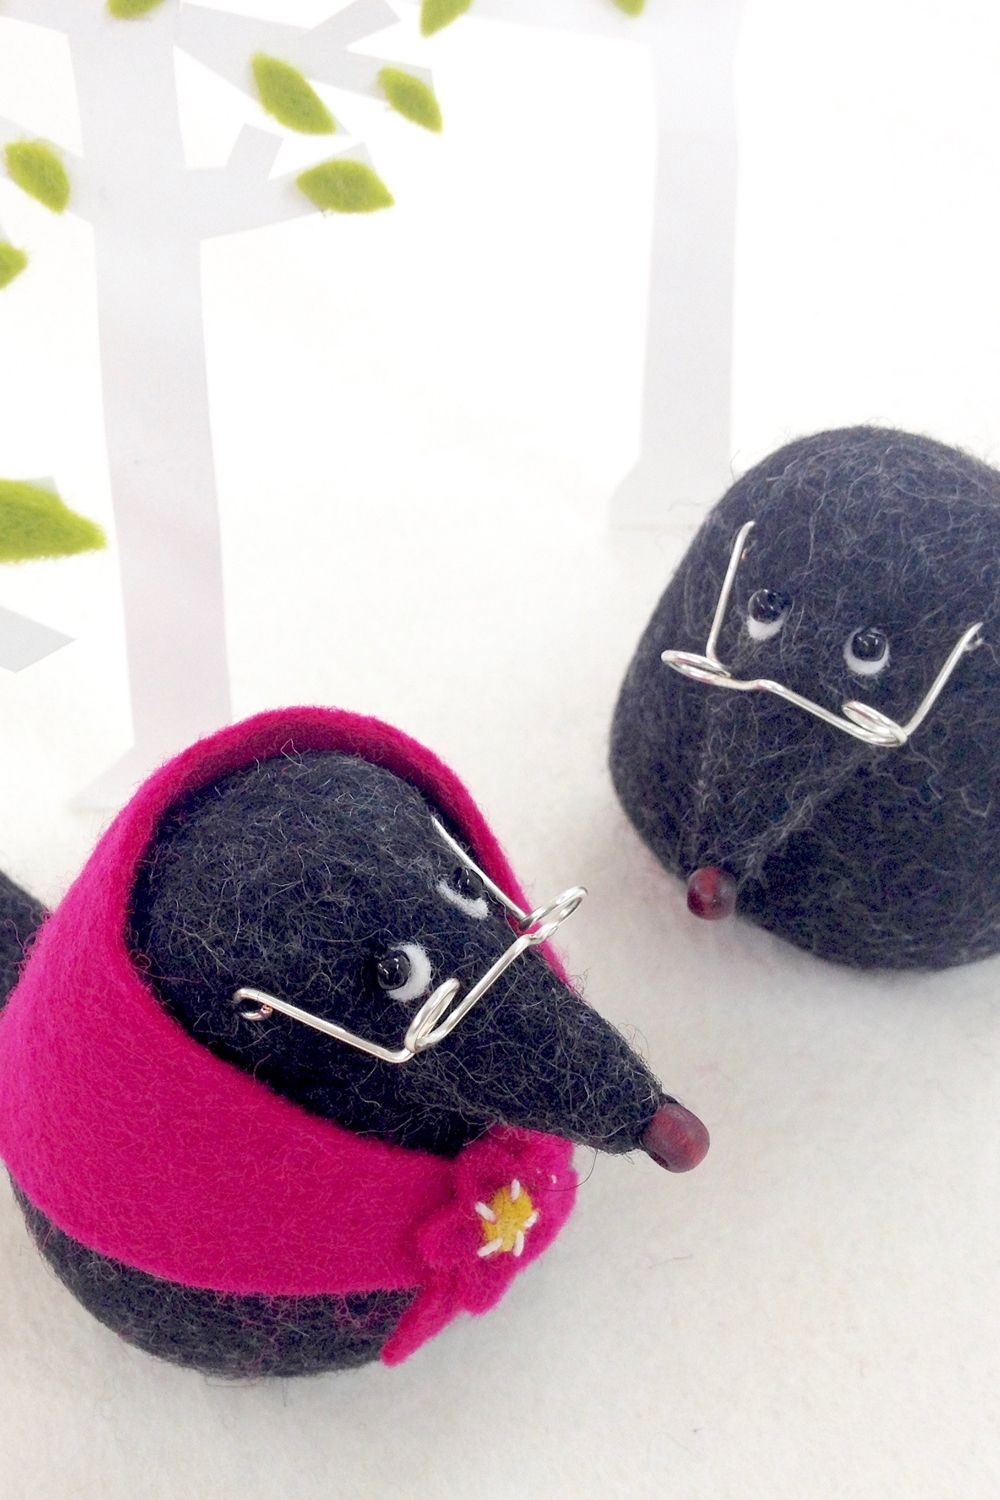 Mr Mole | Underground | Beeswax candles, Candle factory, Mole